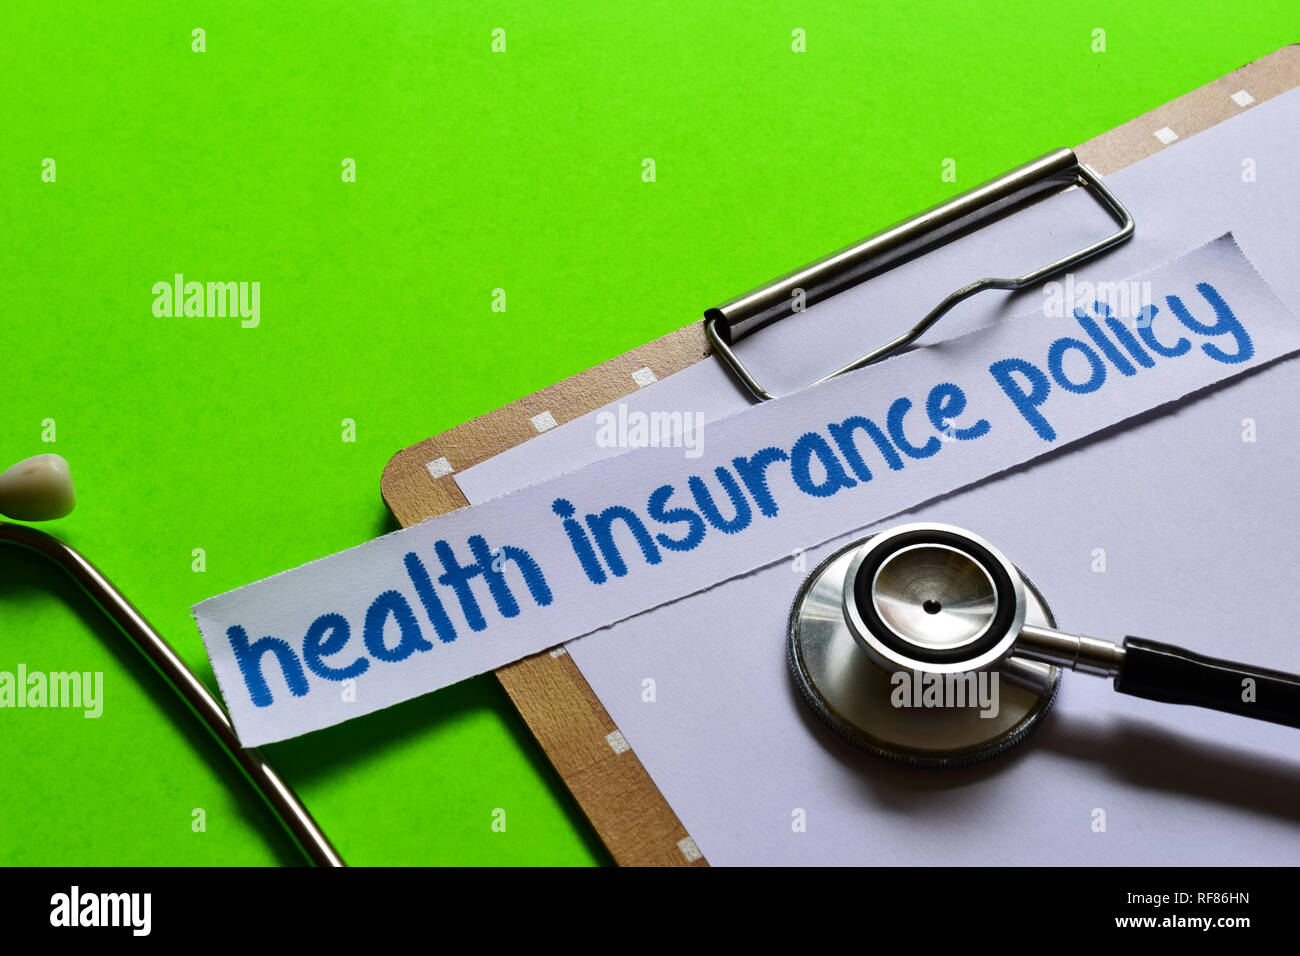 Health insurance policy on healthcare concept inspiration with green background - Stock Image